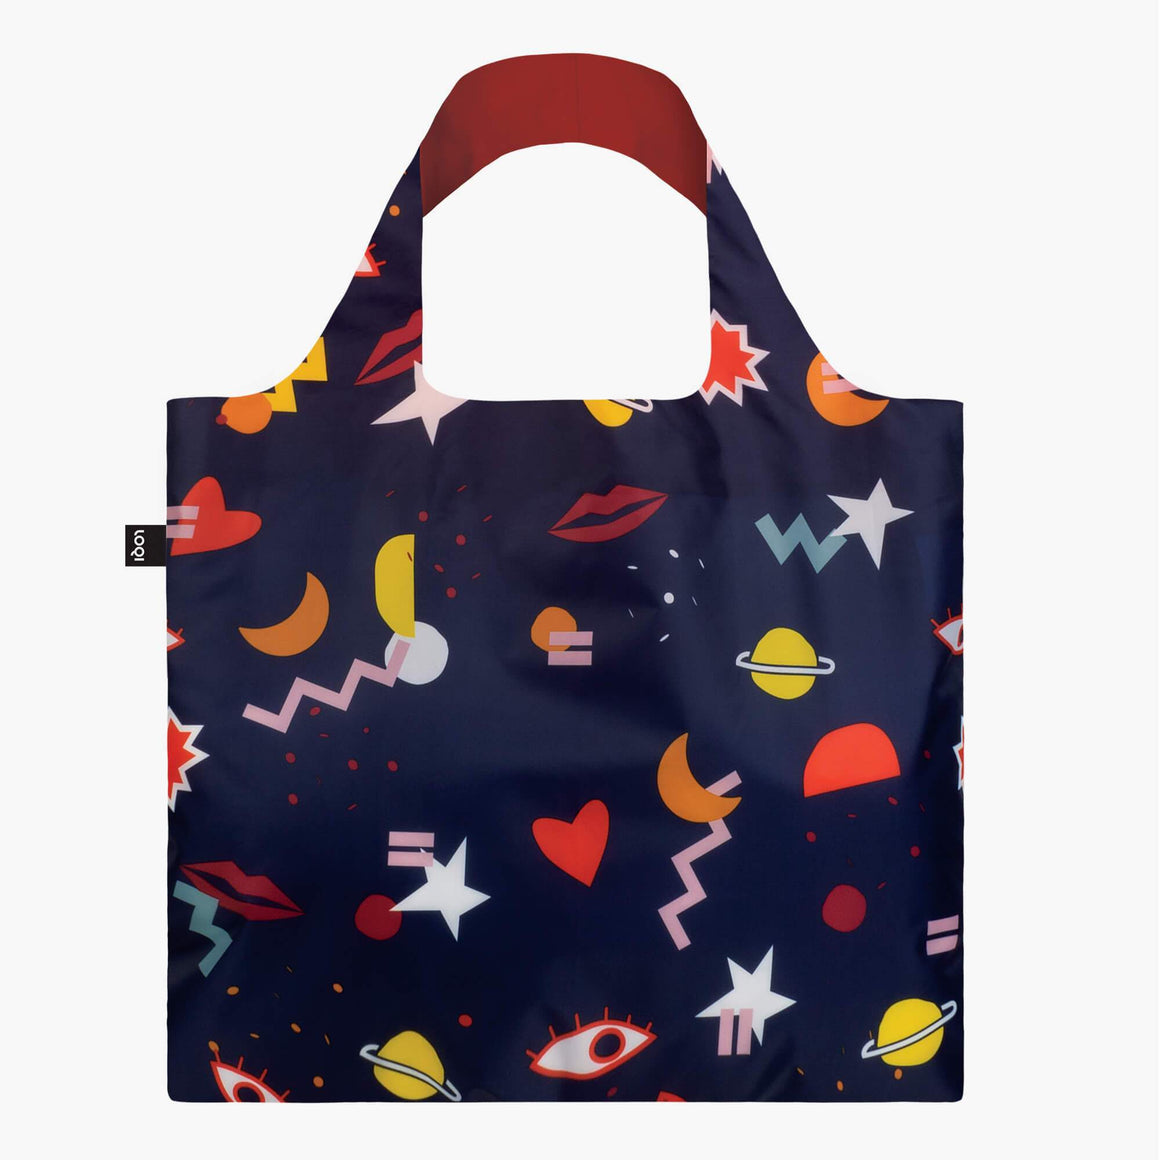 Tote Bag - CELESTE WALLAERT Night Night